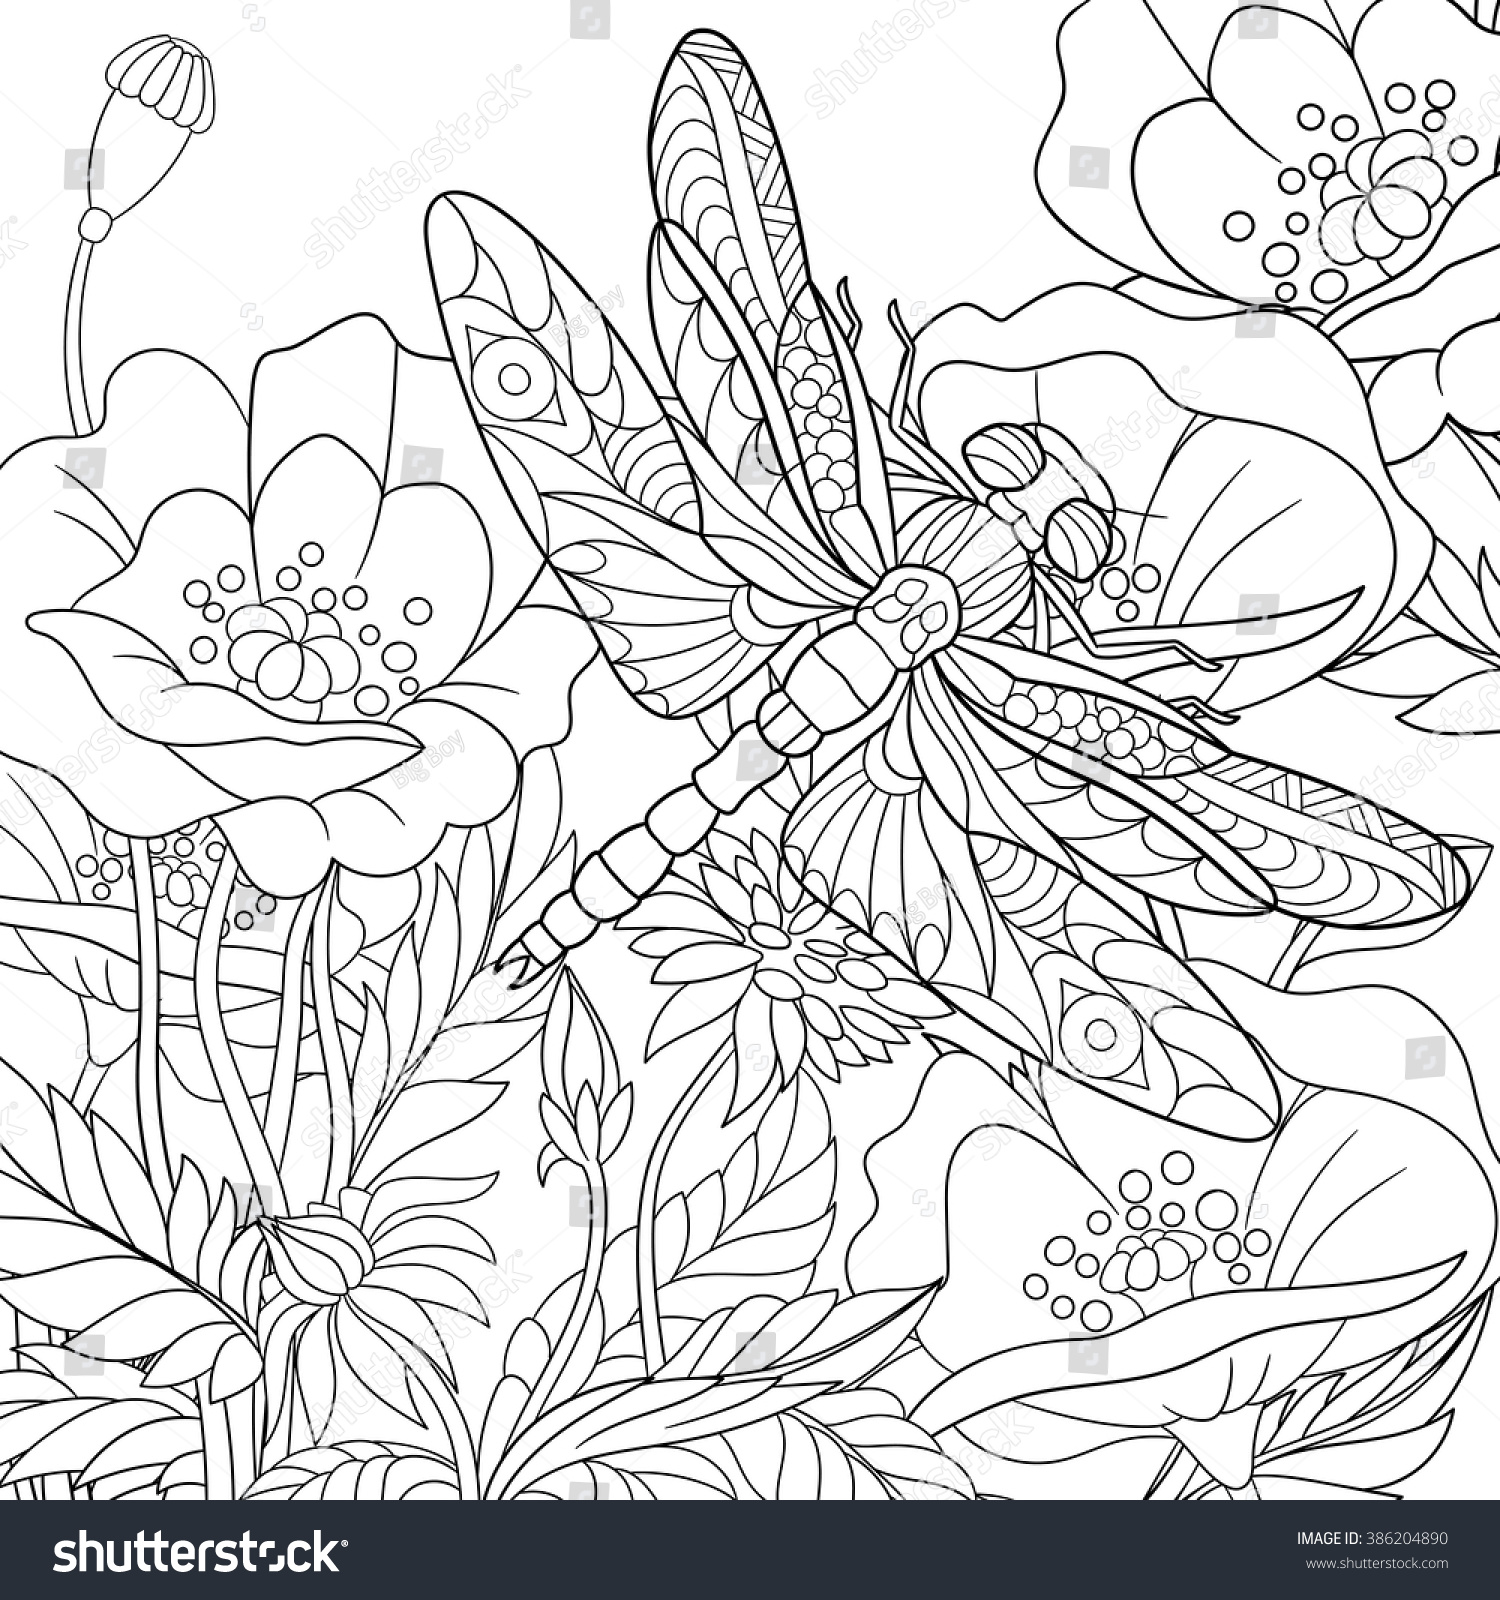 Zentangle Stylized Cartoon Dragonfly Insect Flying Stock Vector ...